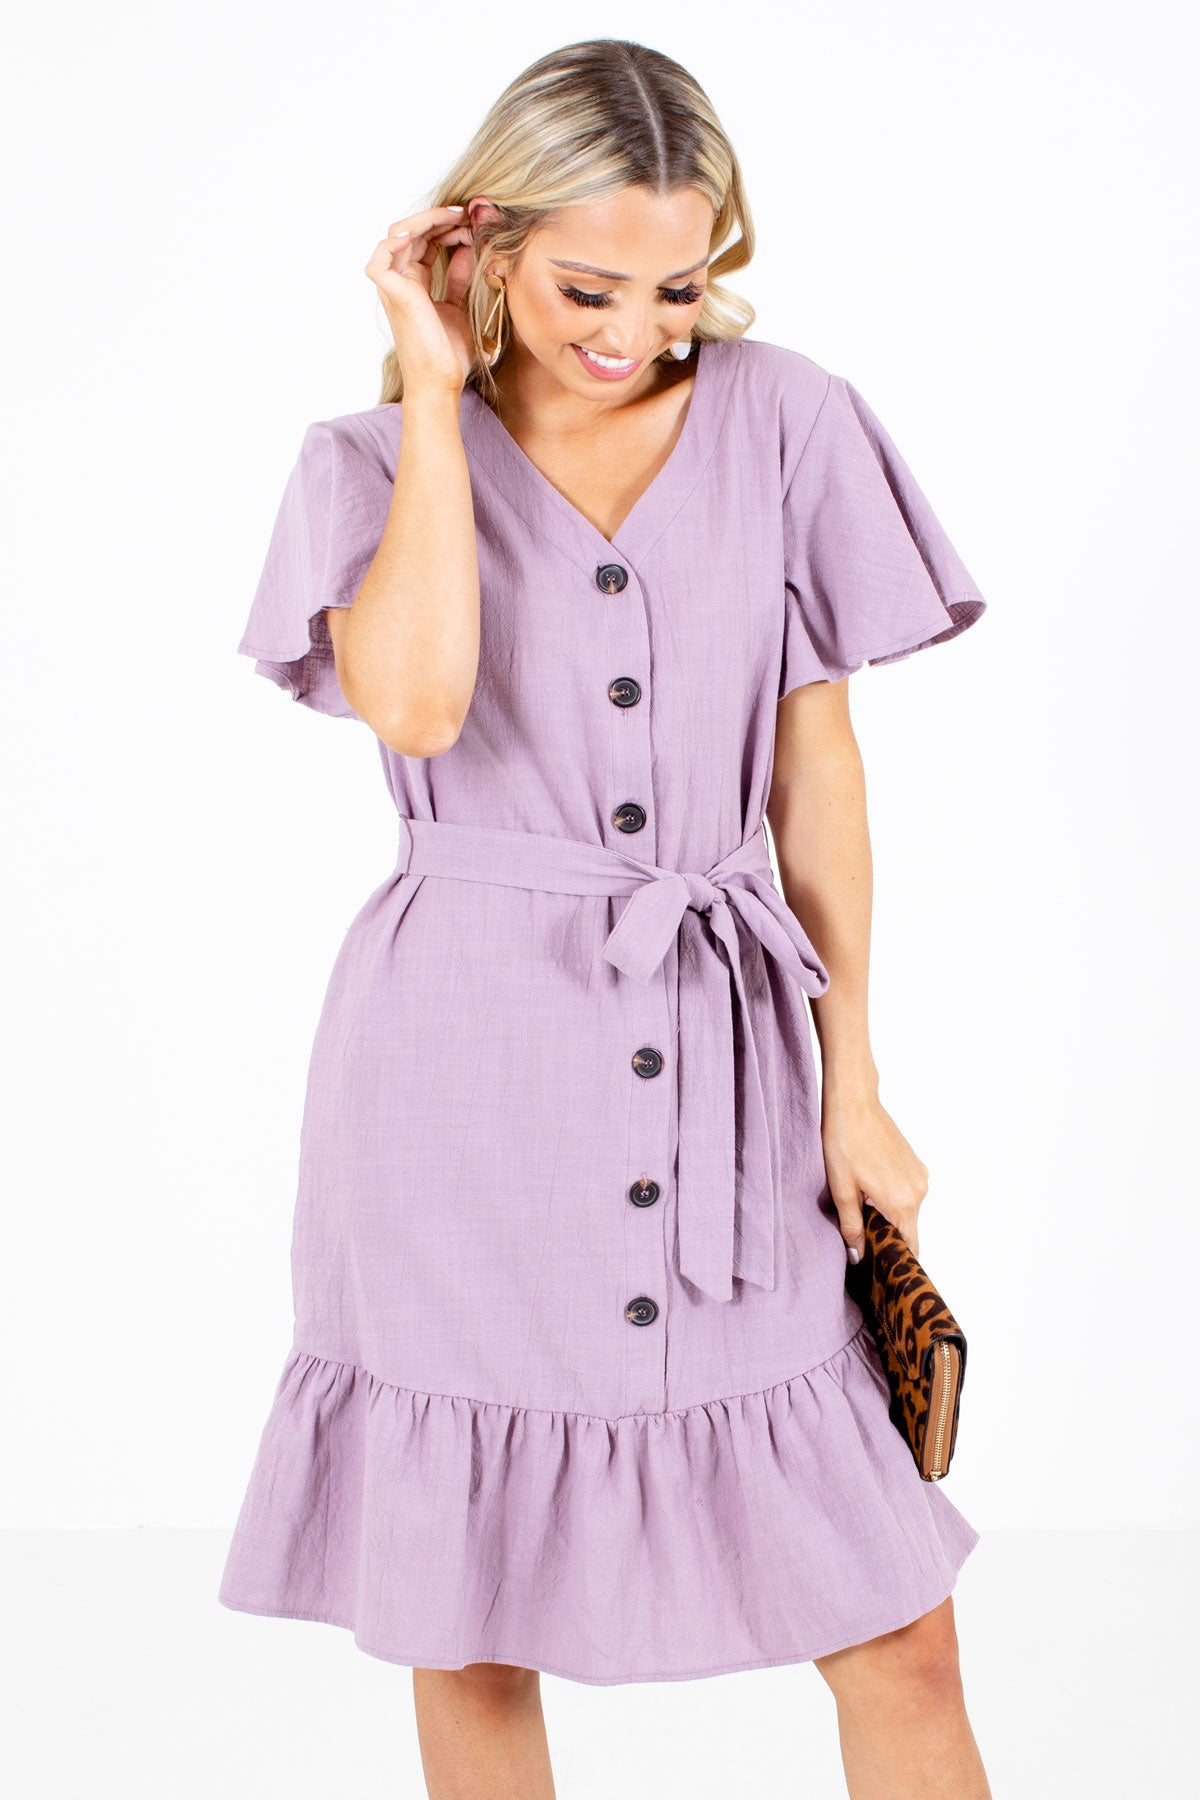 Purple Button-Up Front Boutique Knee-Length Dresses for Women